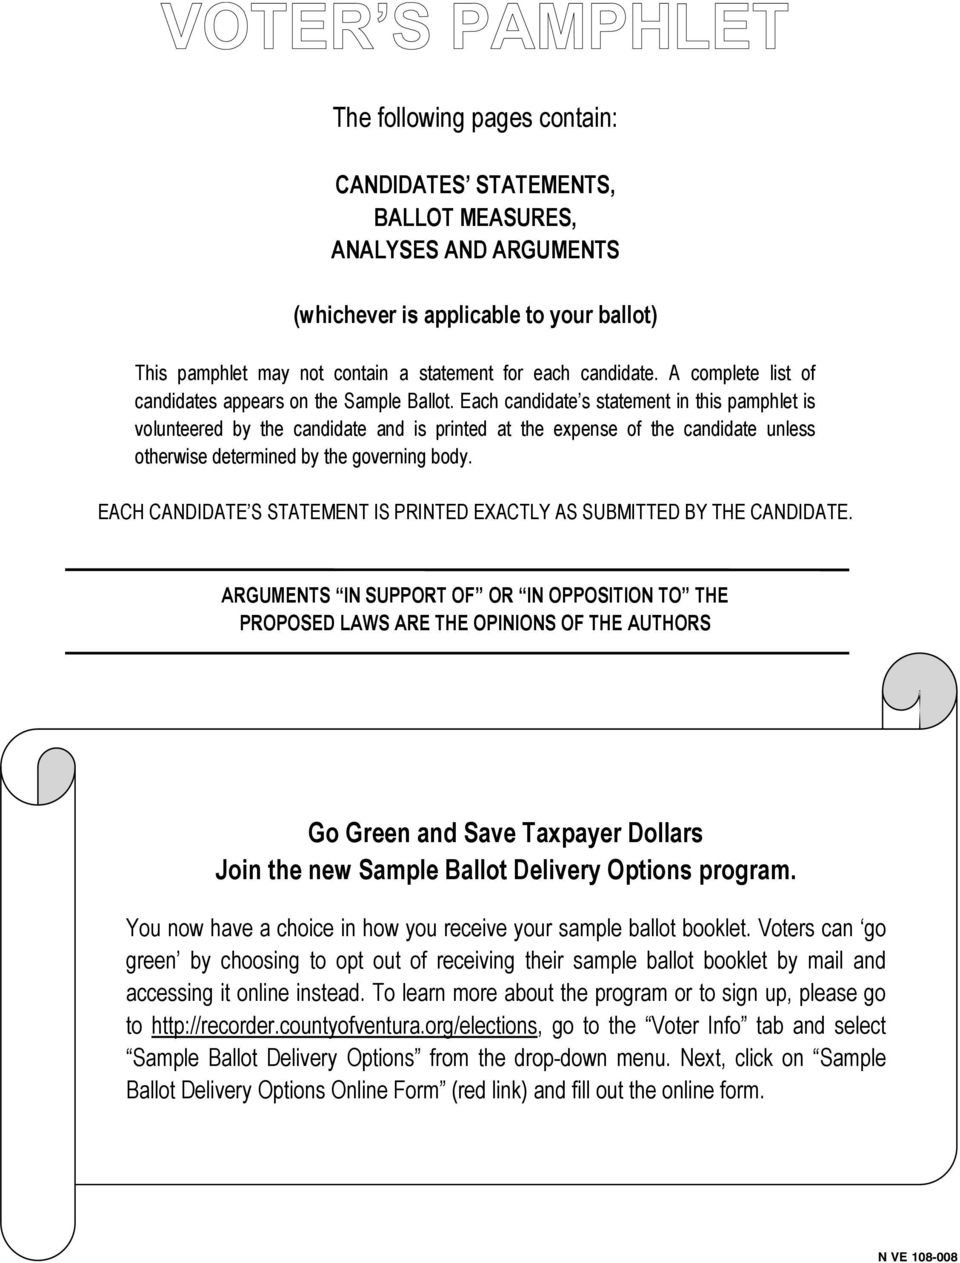 Each candidate s statement in this pamphlet is volunteered by the candidate and is printed at the expense of the candidate unless otherwise determined by the governing body.